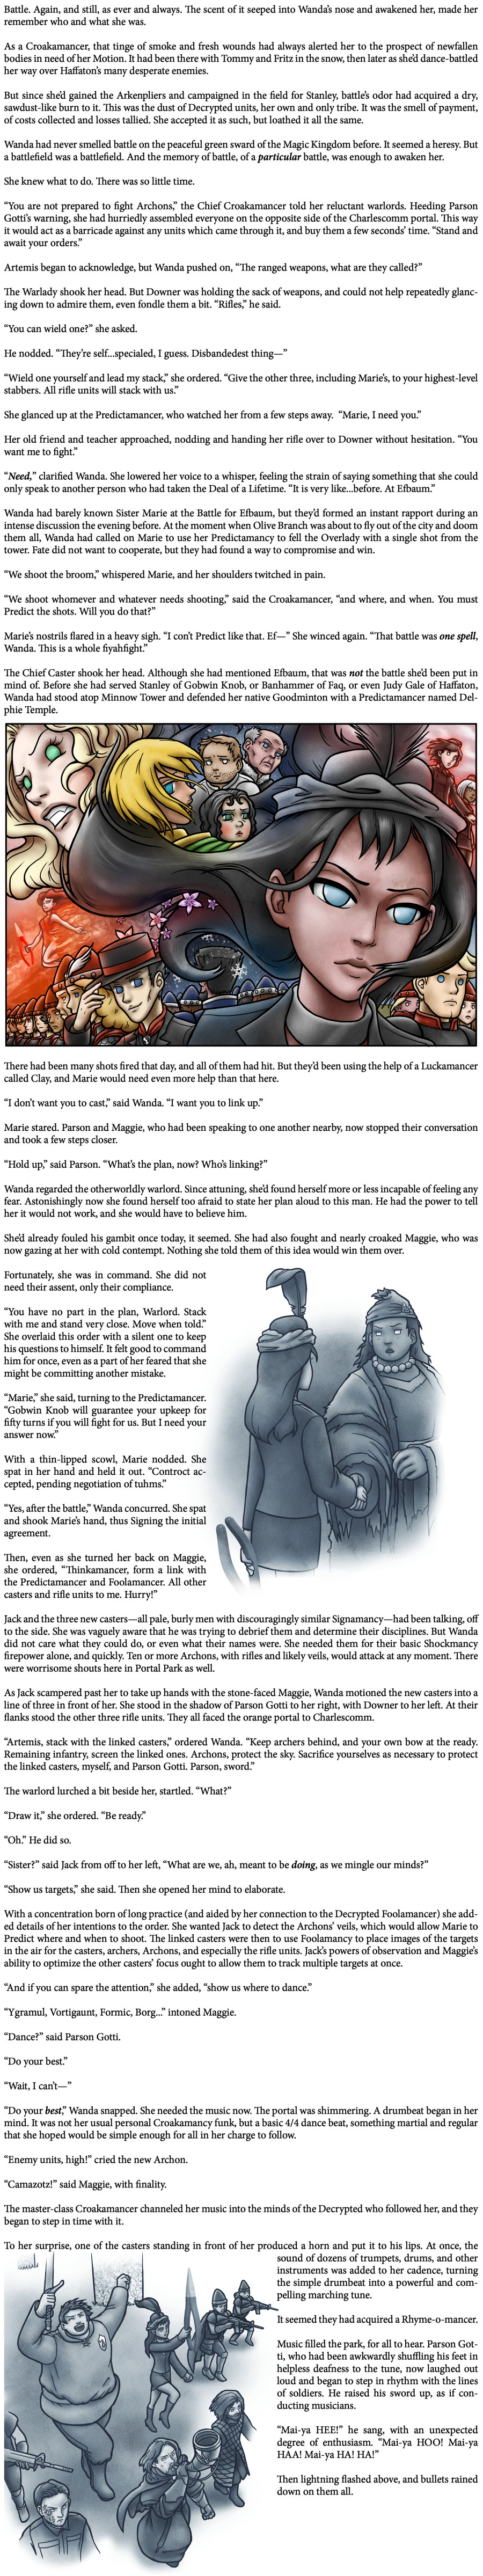 Comic - Book 3 - Page 127